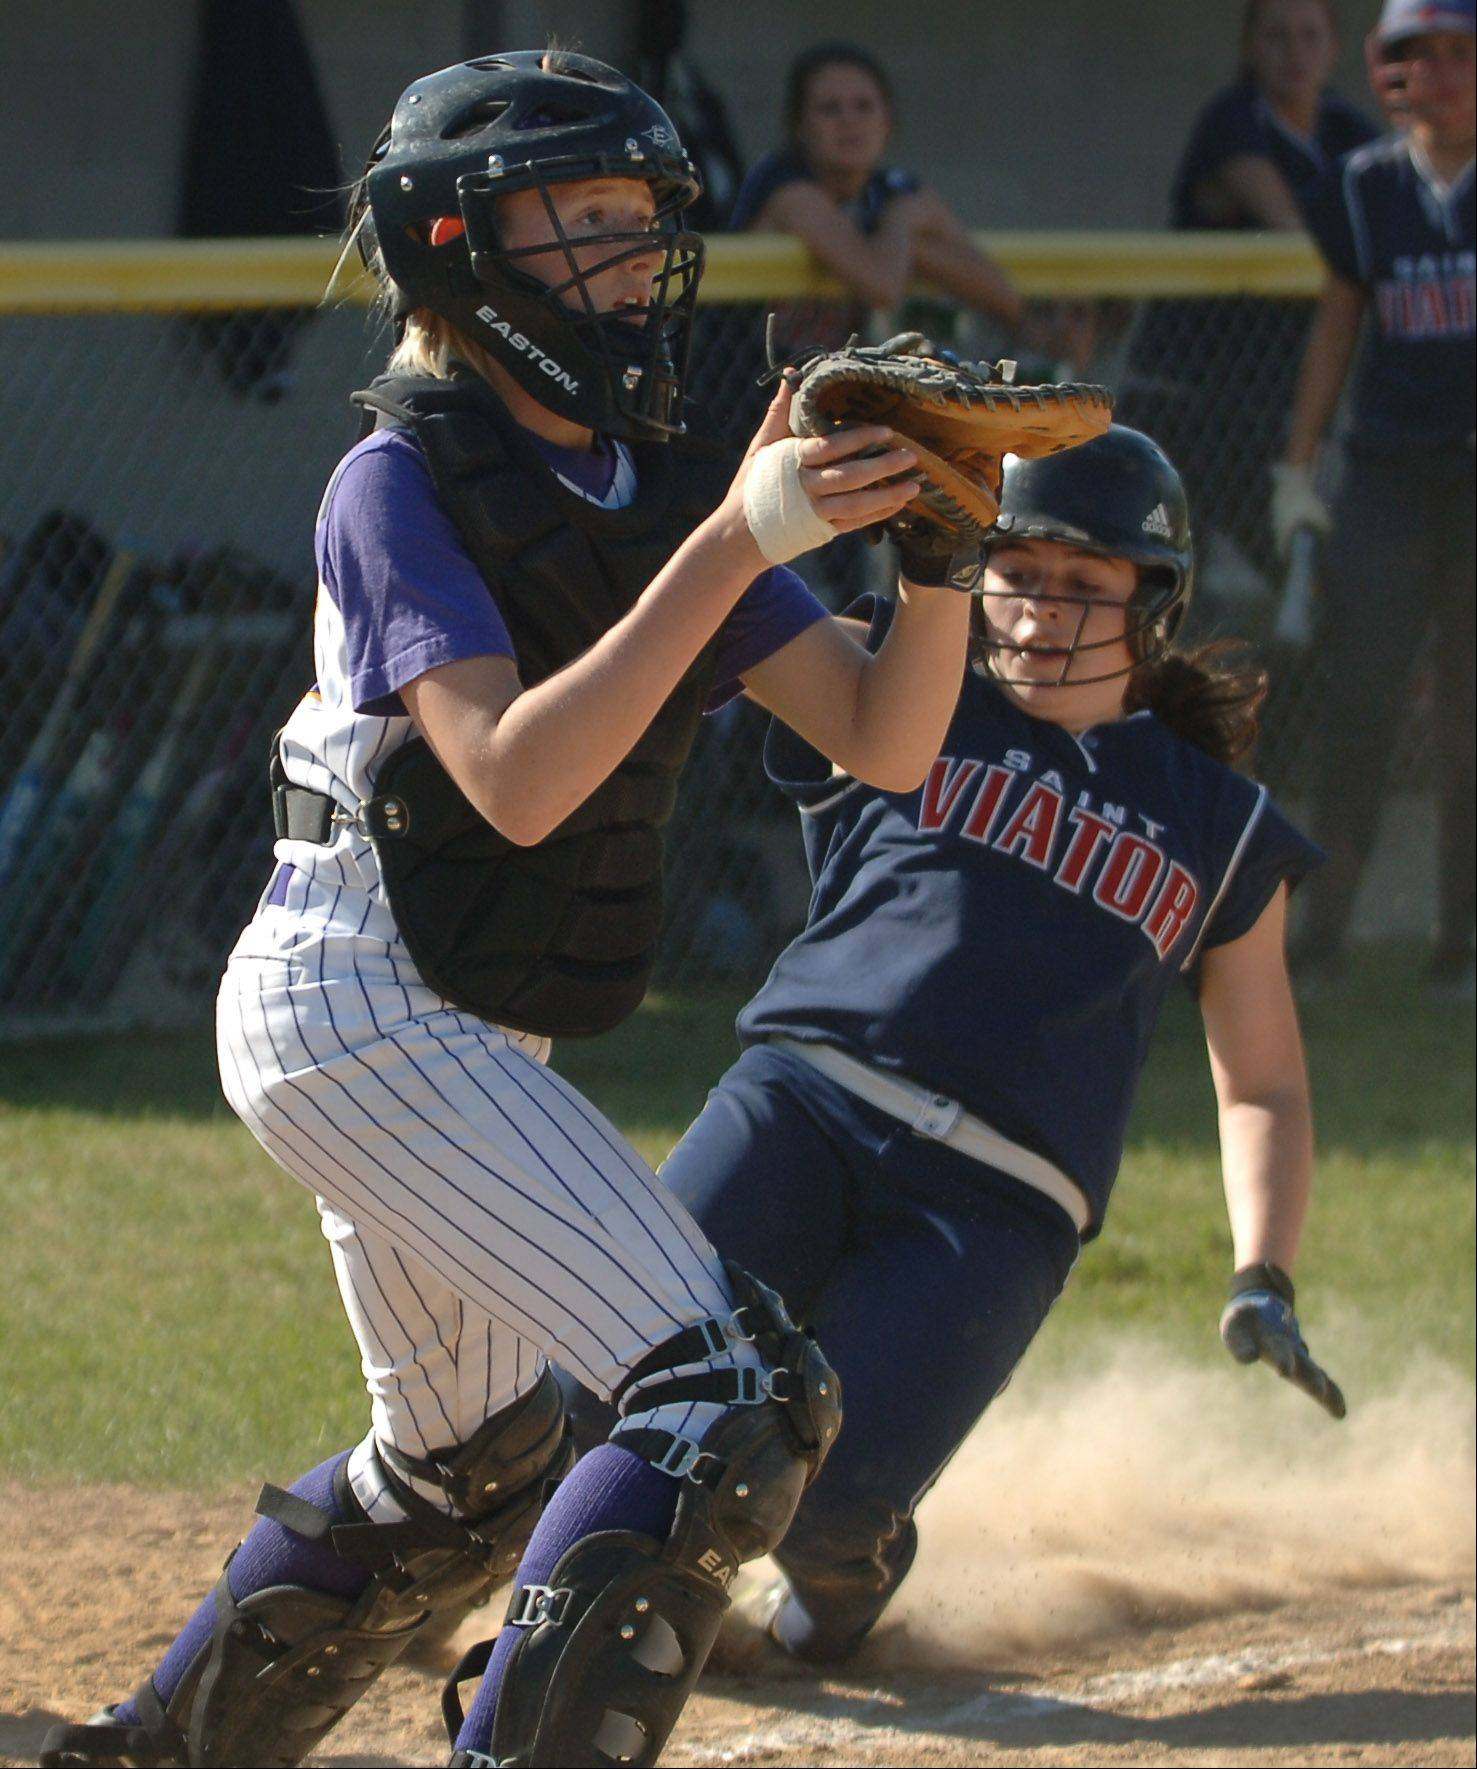 Wauconda catcher Paige Motley, left, waits for the throw as St. Viator's Lauren Prazuch slides safely into home during Monday's regional softball game in Wauconda.